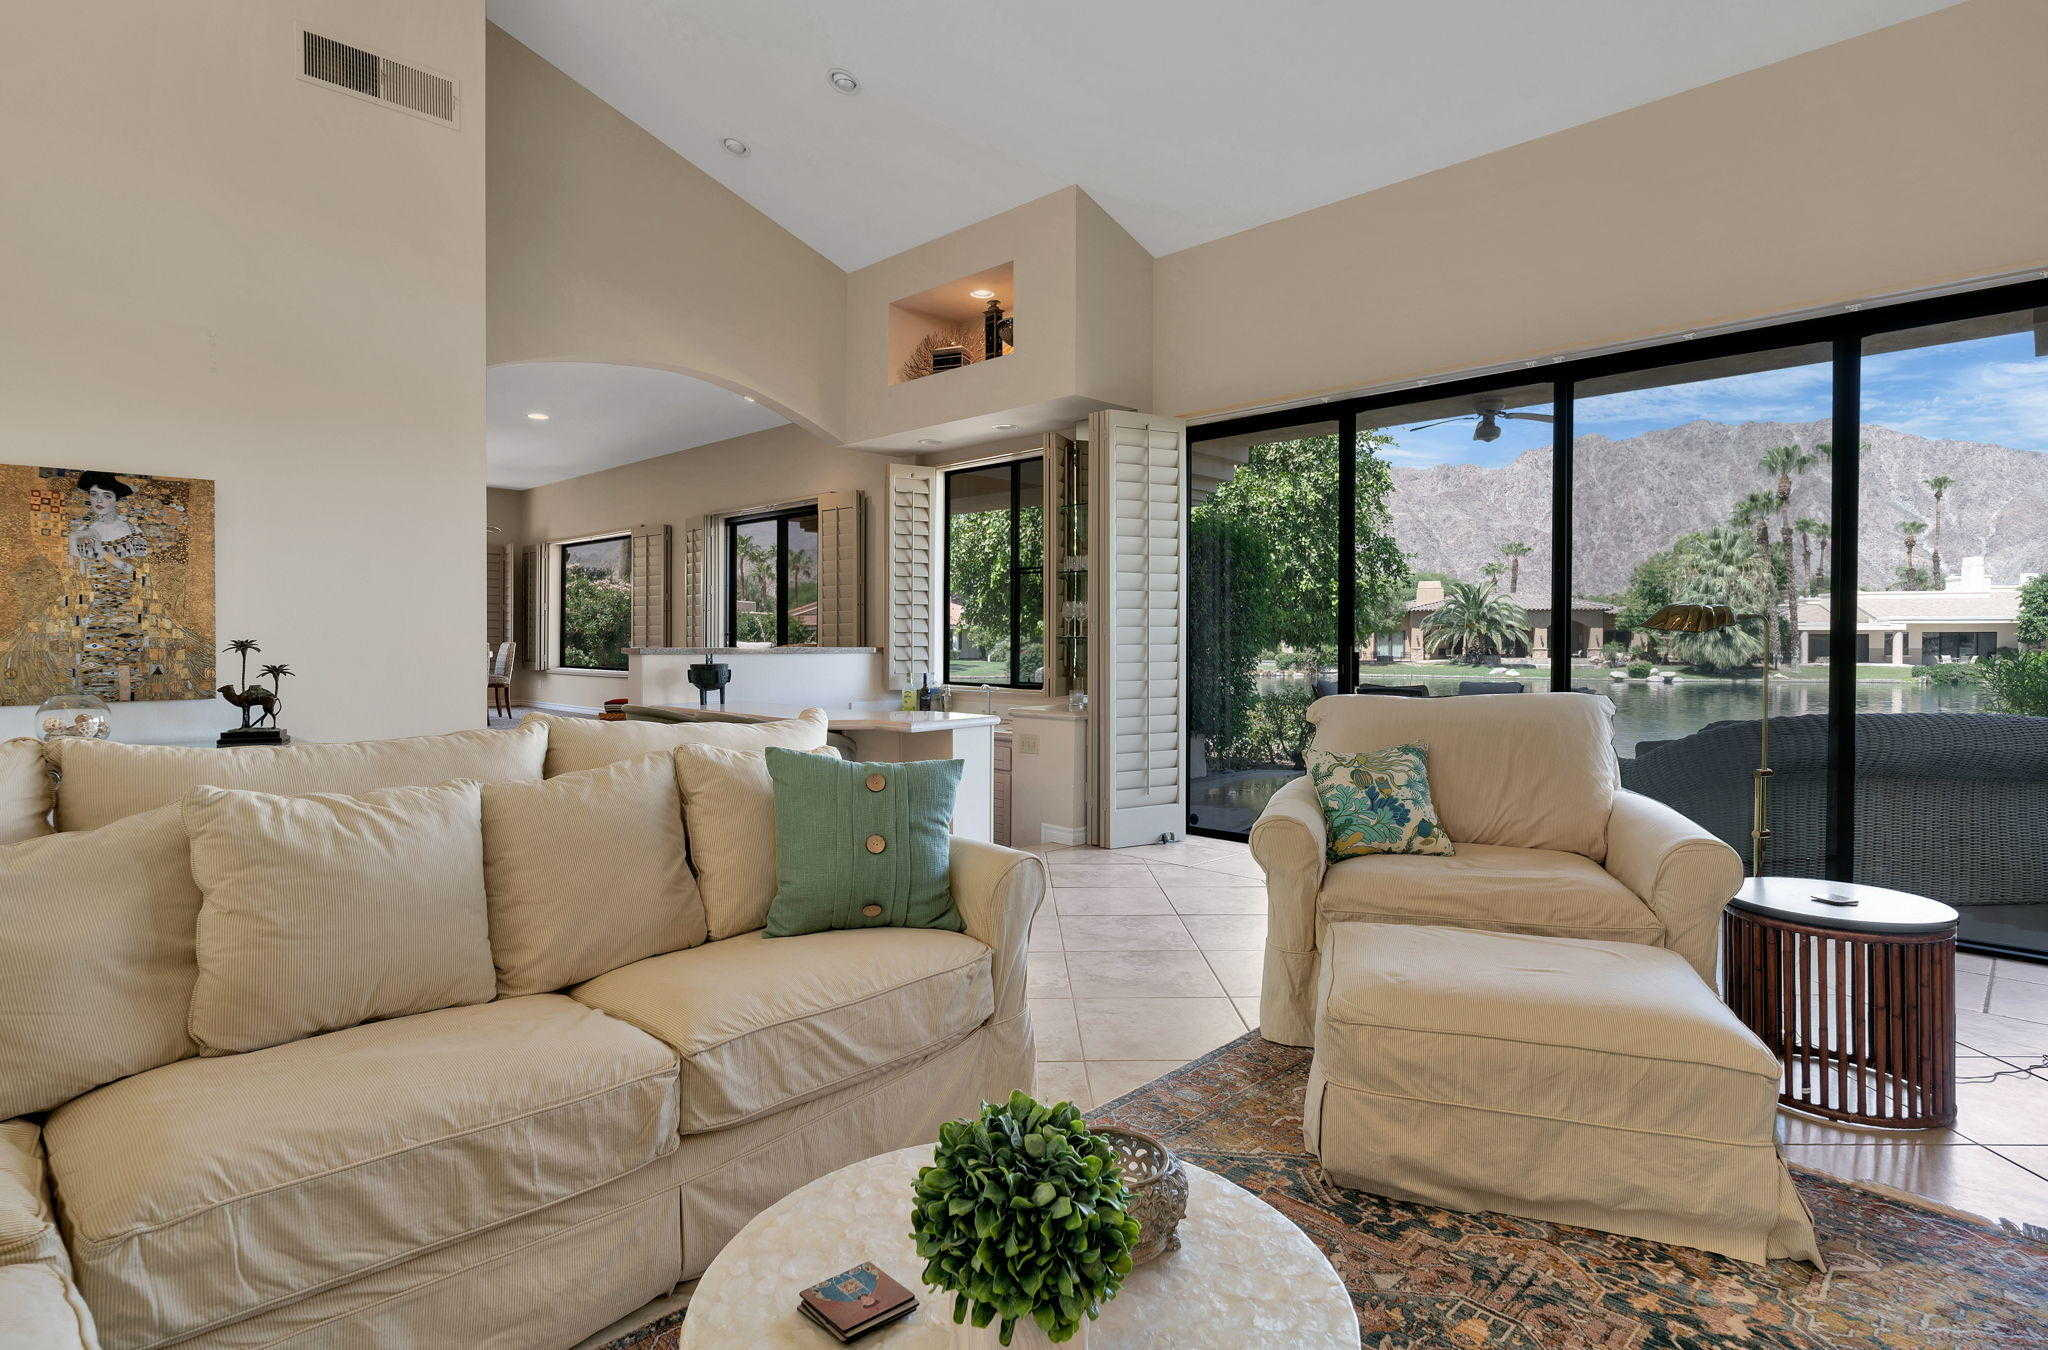 $625,000 - 3Br/4Ba -  for Sale in Pga Stadium, La Quinta